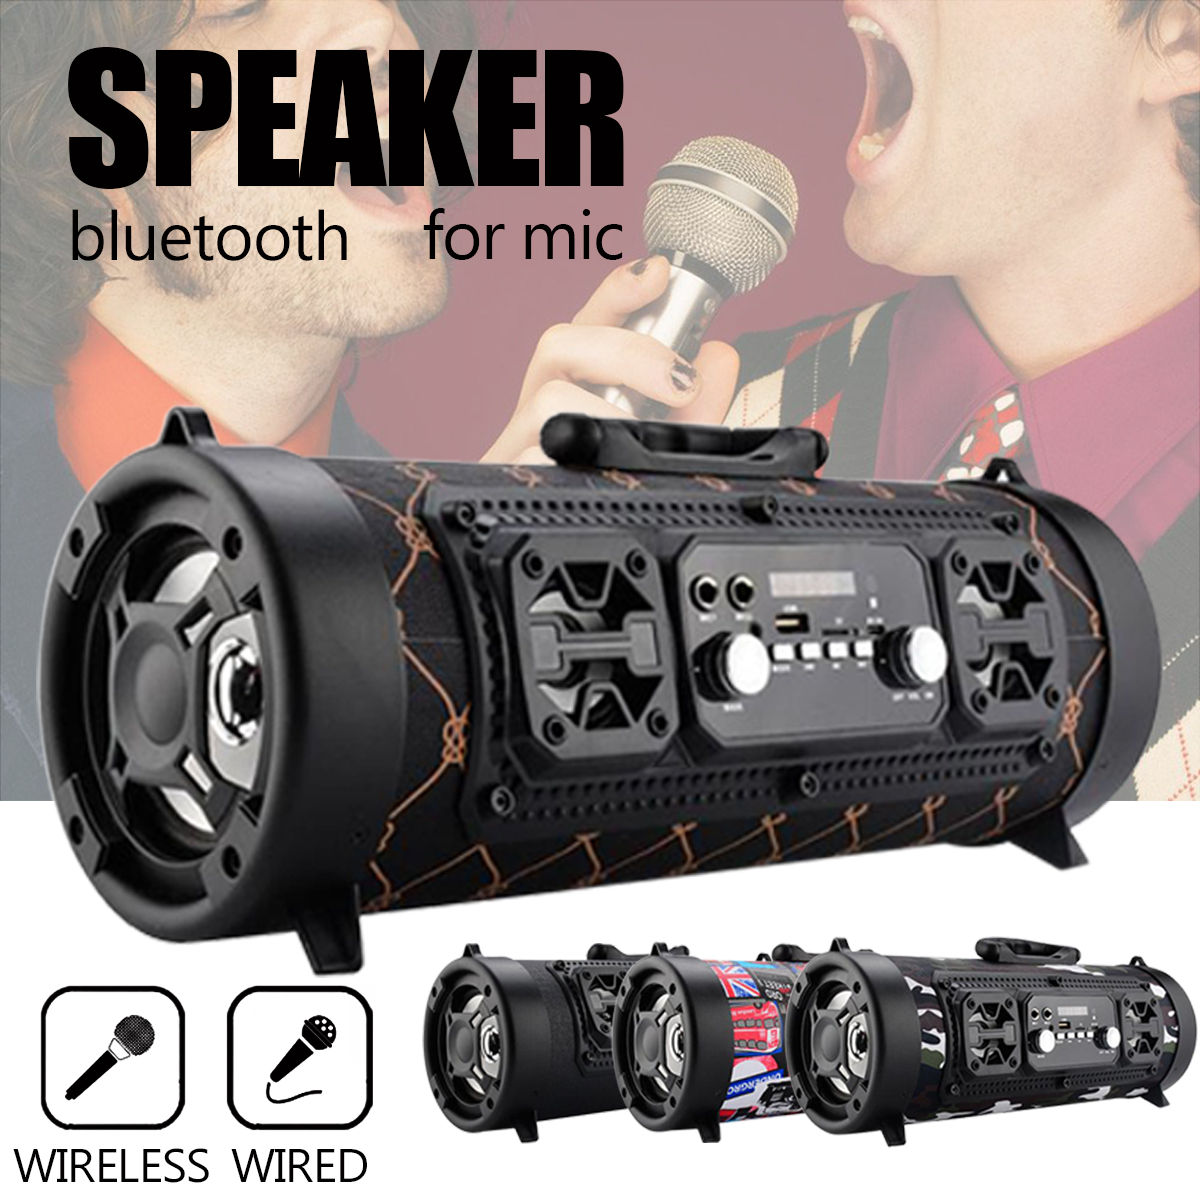 Aggressive Portable Wireless Bluetooth 4.2 Speaker Hifi Music Surround Stereo Subwoofer Car Audio Loudspeaker Brass With Mic Outdoor Player